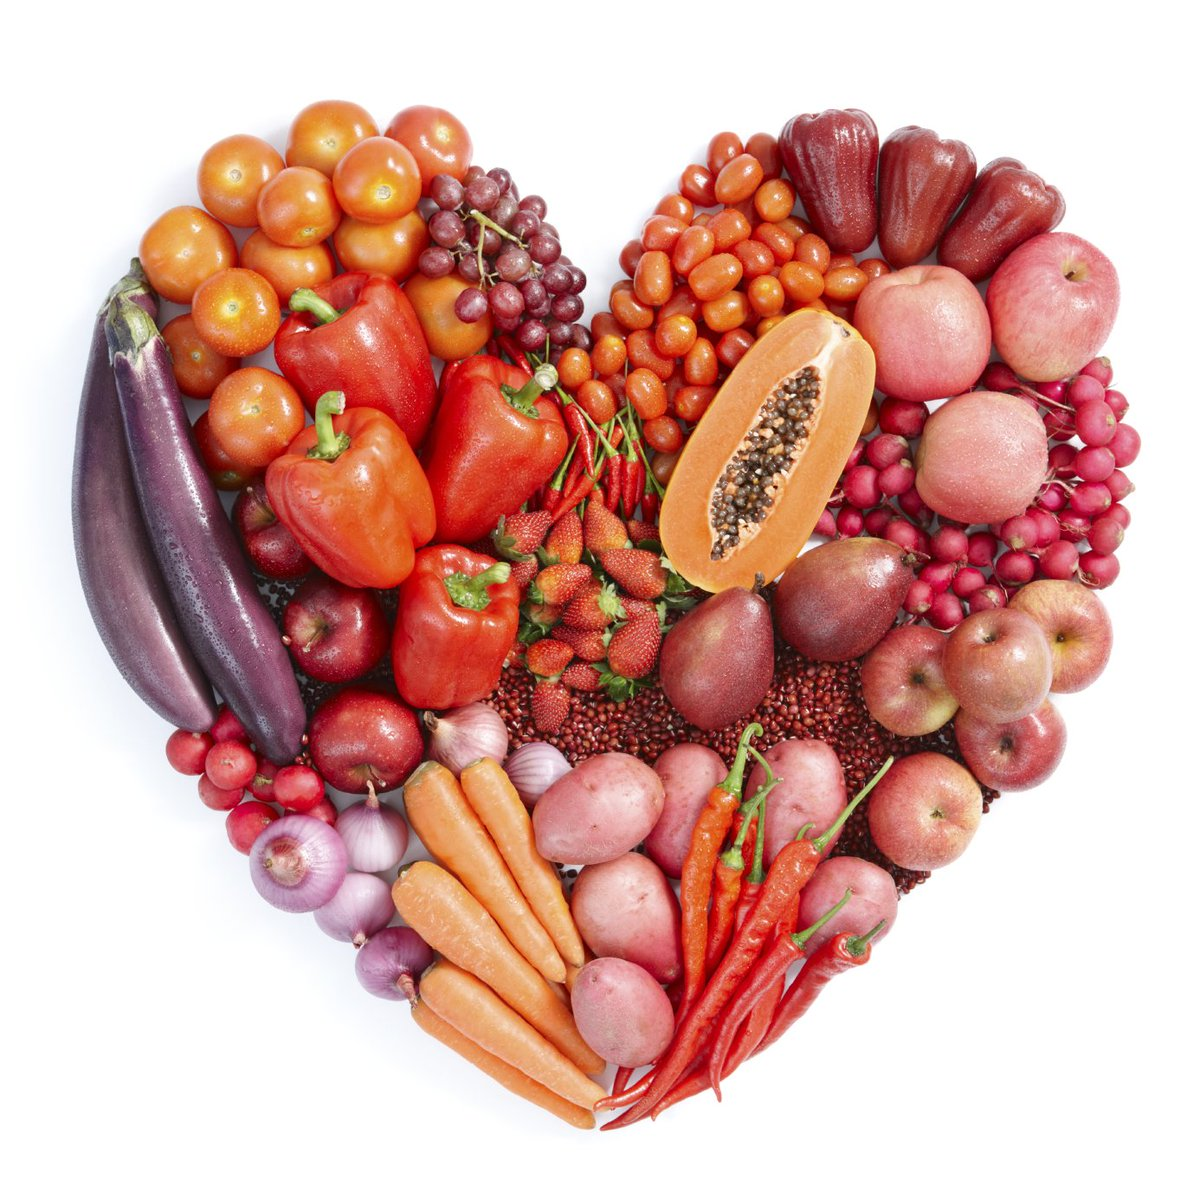 Get your hearts pumping with the good stuff! For #AmericanHeartMonth, fill your plate with FRUITS and VEGGIES! https://t.co/Qc3DkZQA8i